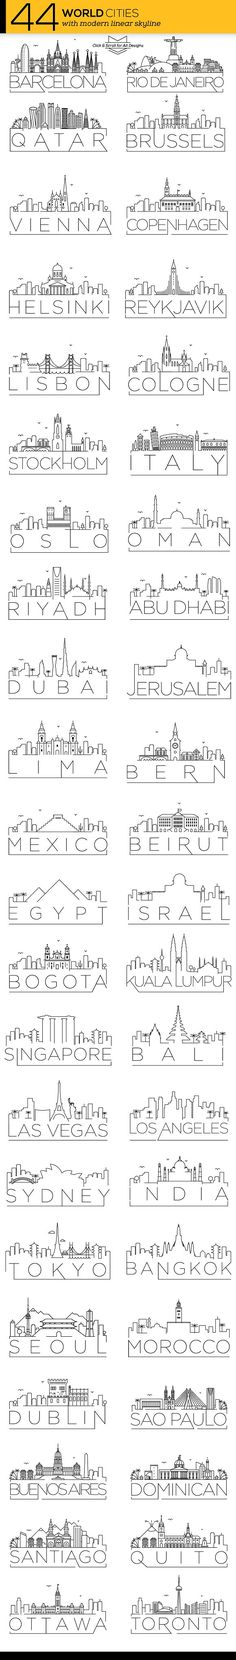 44 Different World Cities Skyline by Avny on @creativemarket